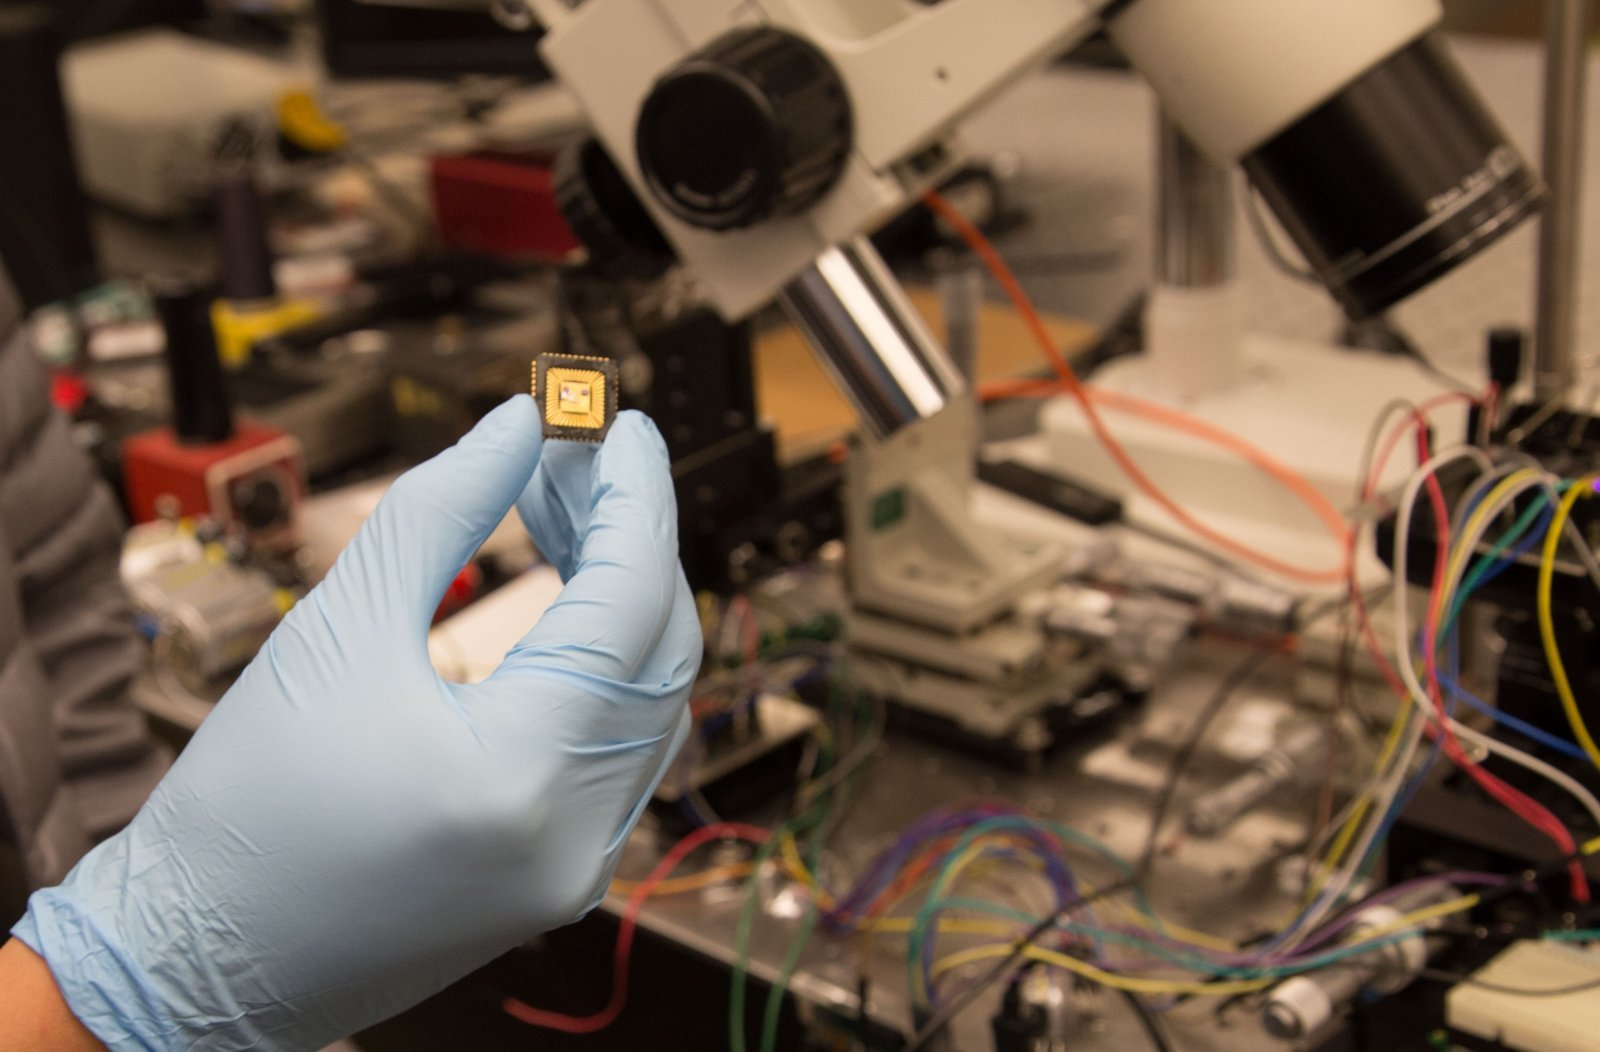 Gloved hands in lab holding electronic component General research image.